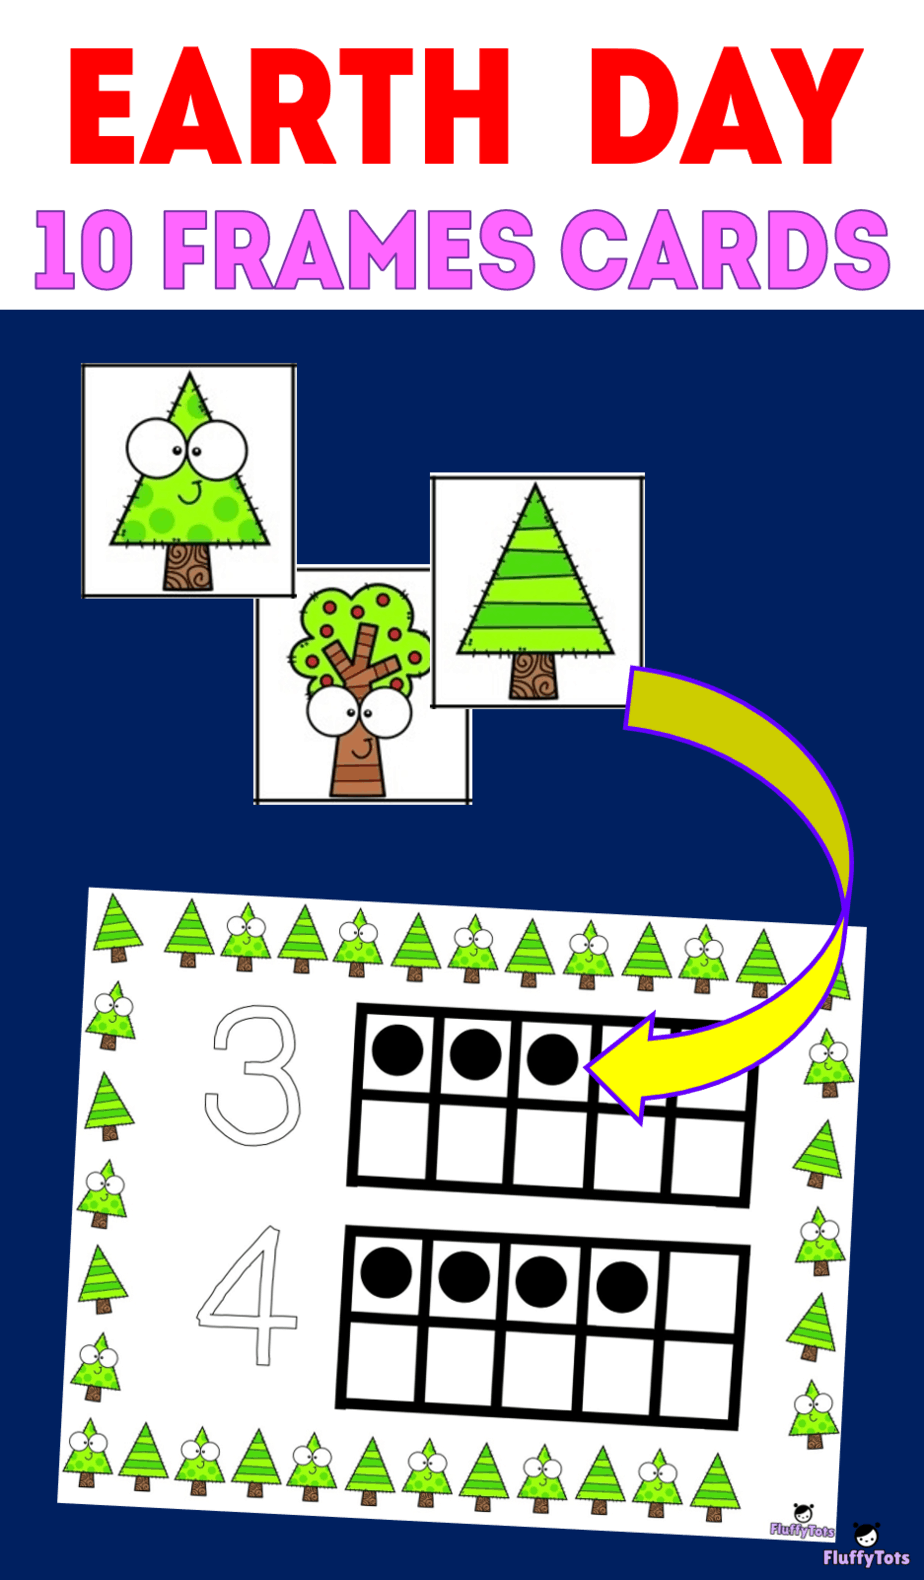 Earth Day Printables Free Earth Day Trees 10 Frames For Preschoolers Counting Activities Preschool Math Activities Preschool Fun Activities For Preschoolers [ 1580 x 924 Pixel ]